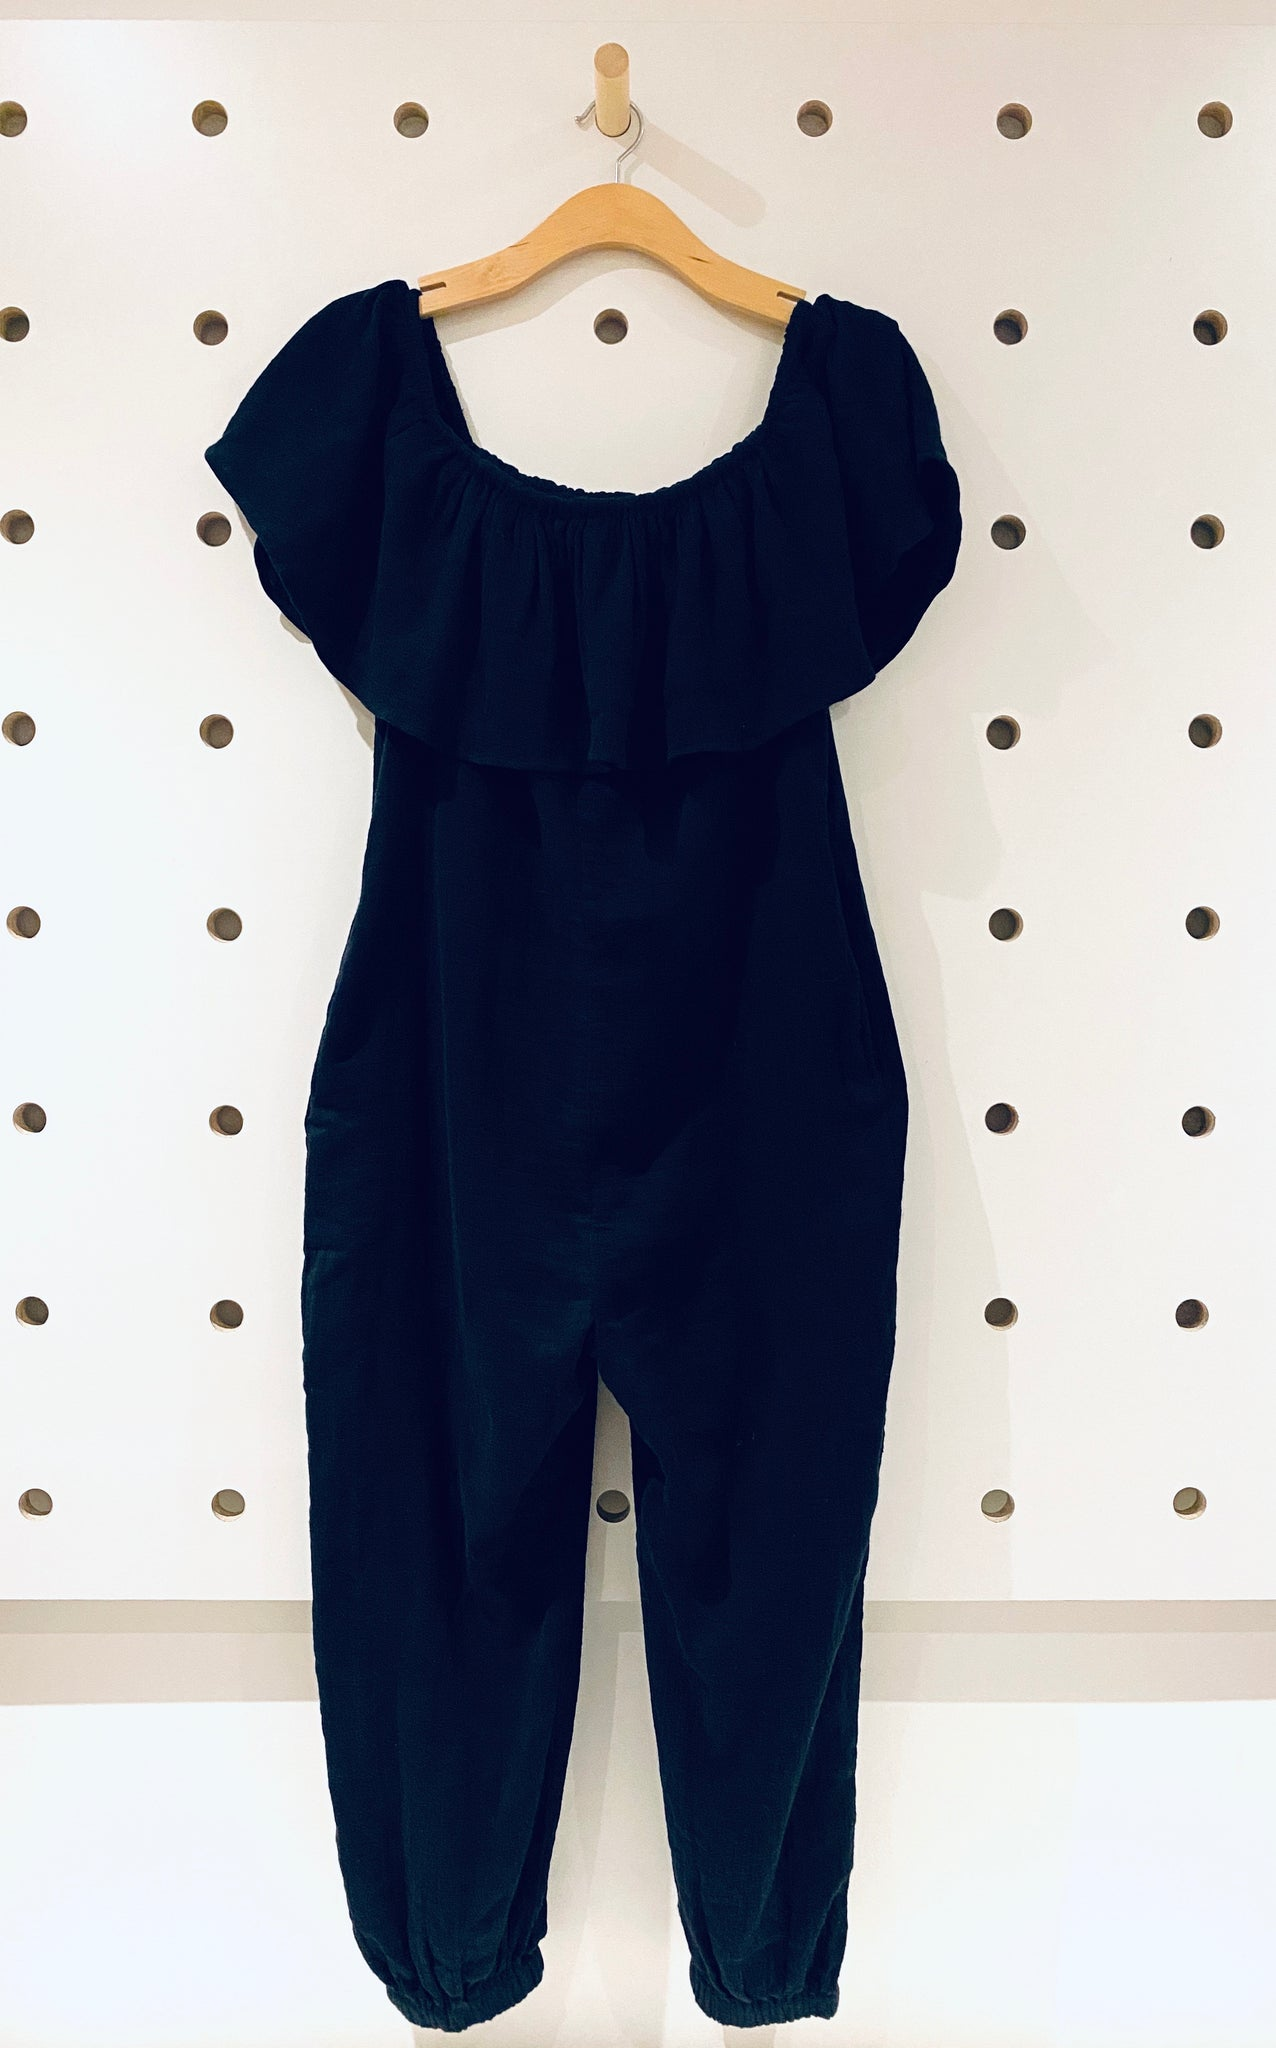 Mara Hoffman Black Jumpsuit Sz Medium